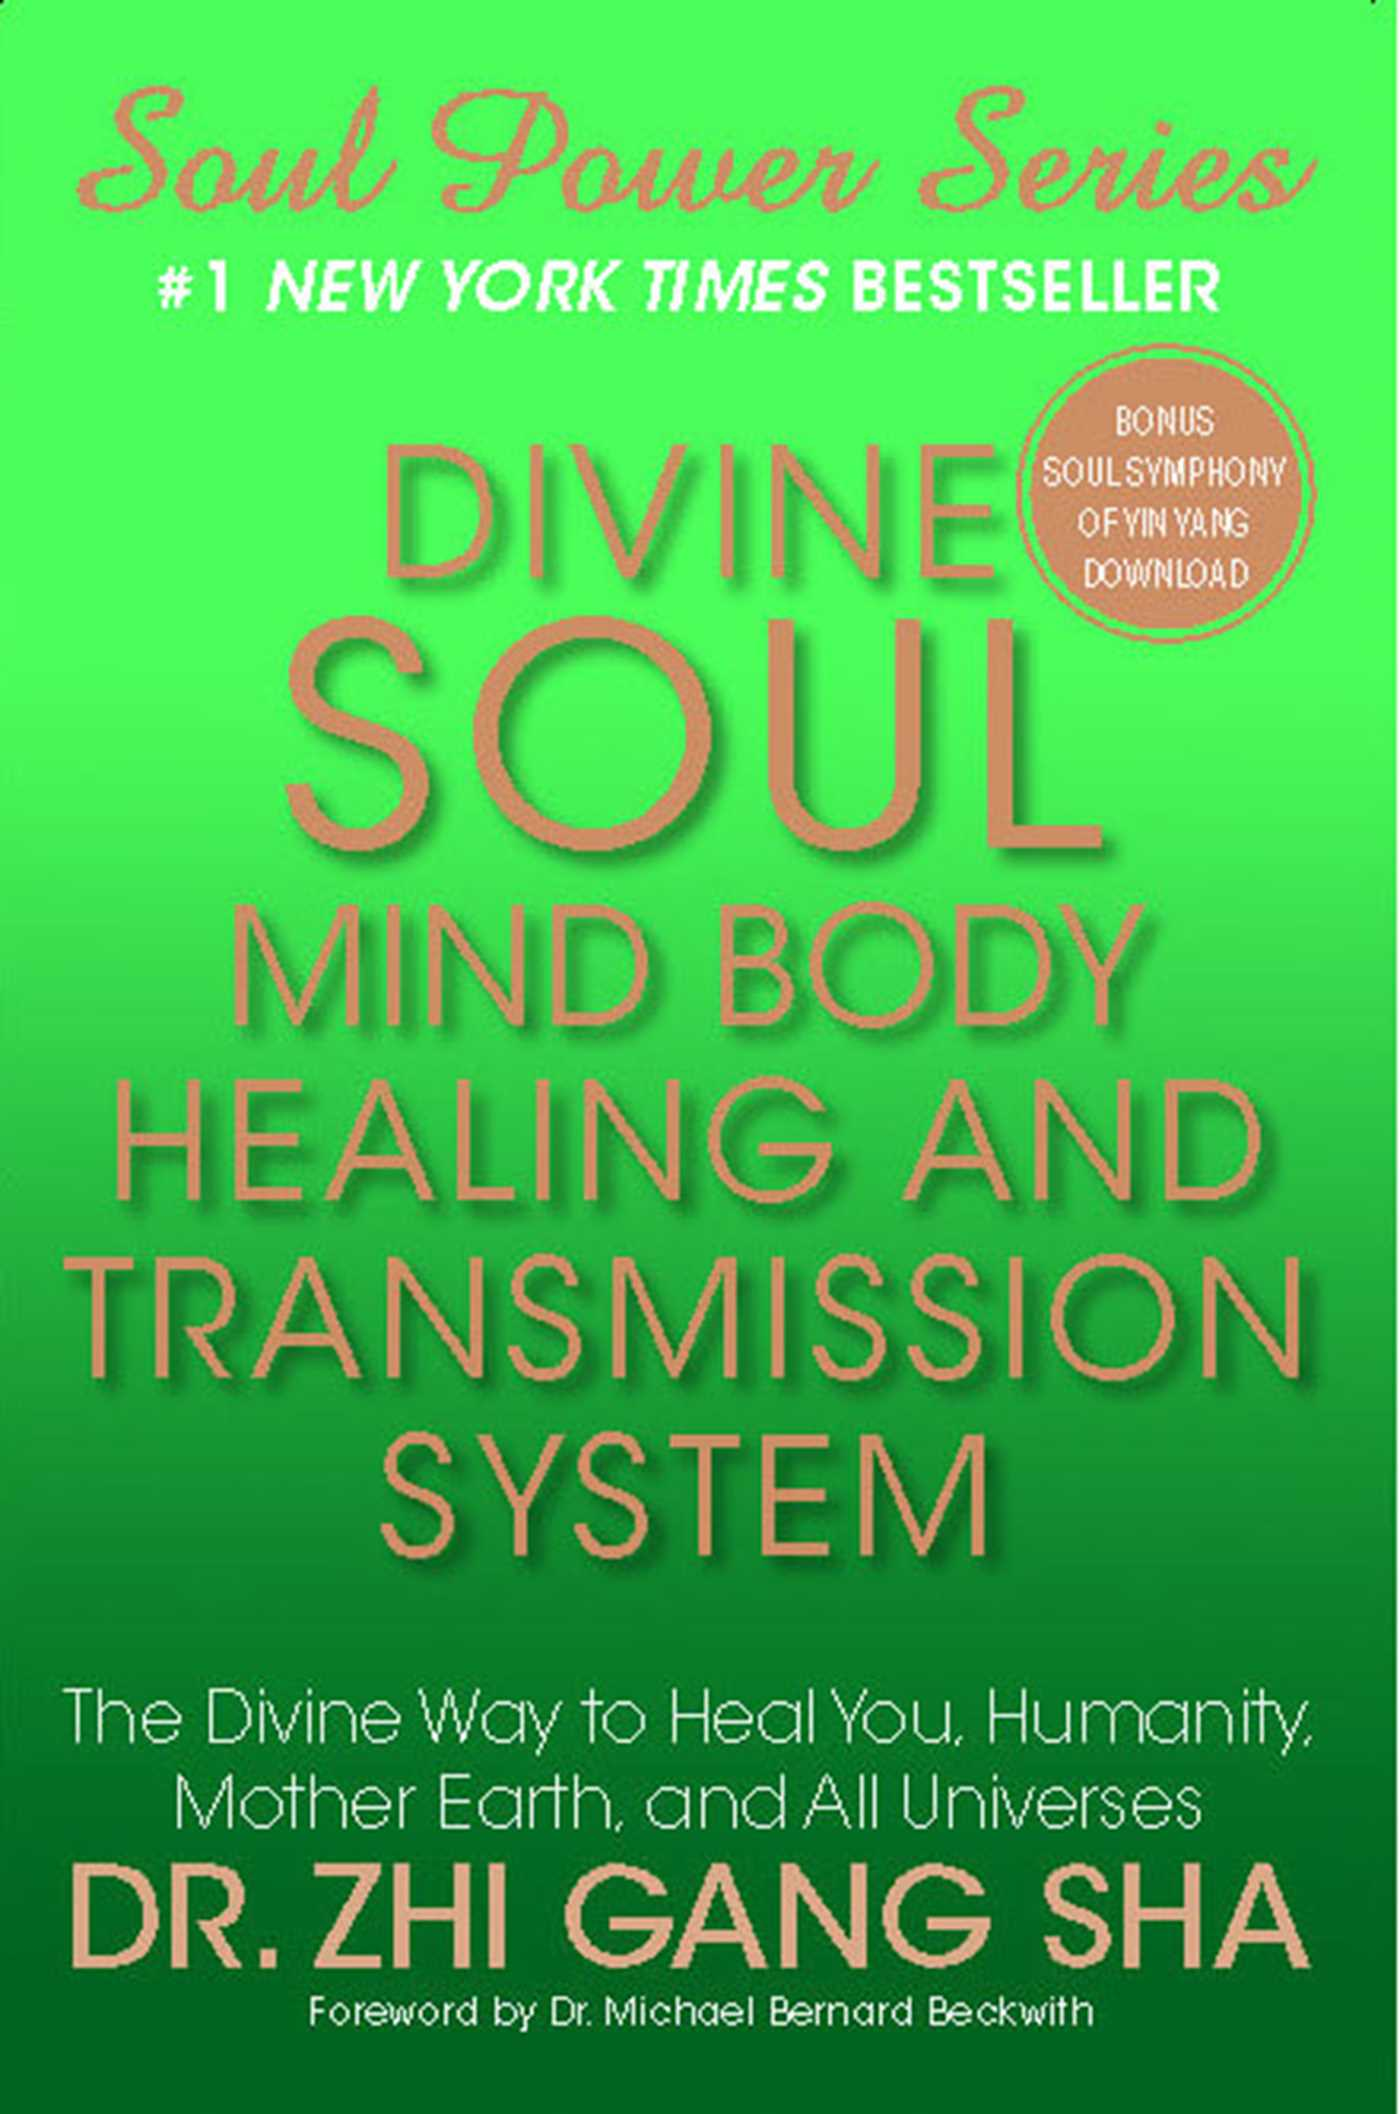 Divine soul mind body healing and transmission sys 9781439180877 hr